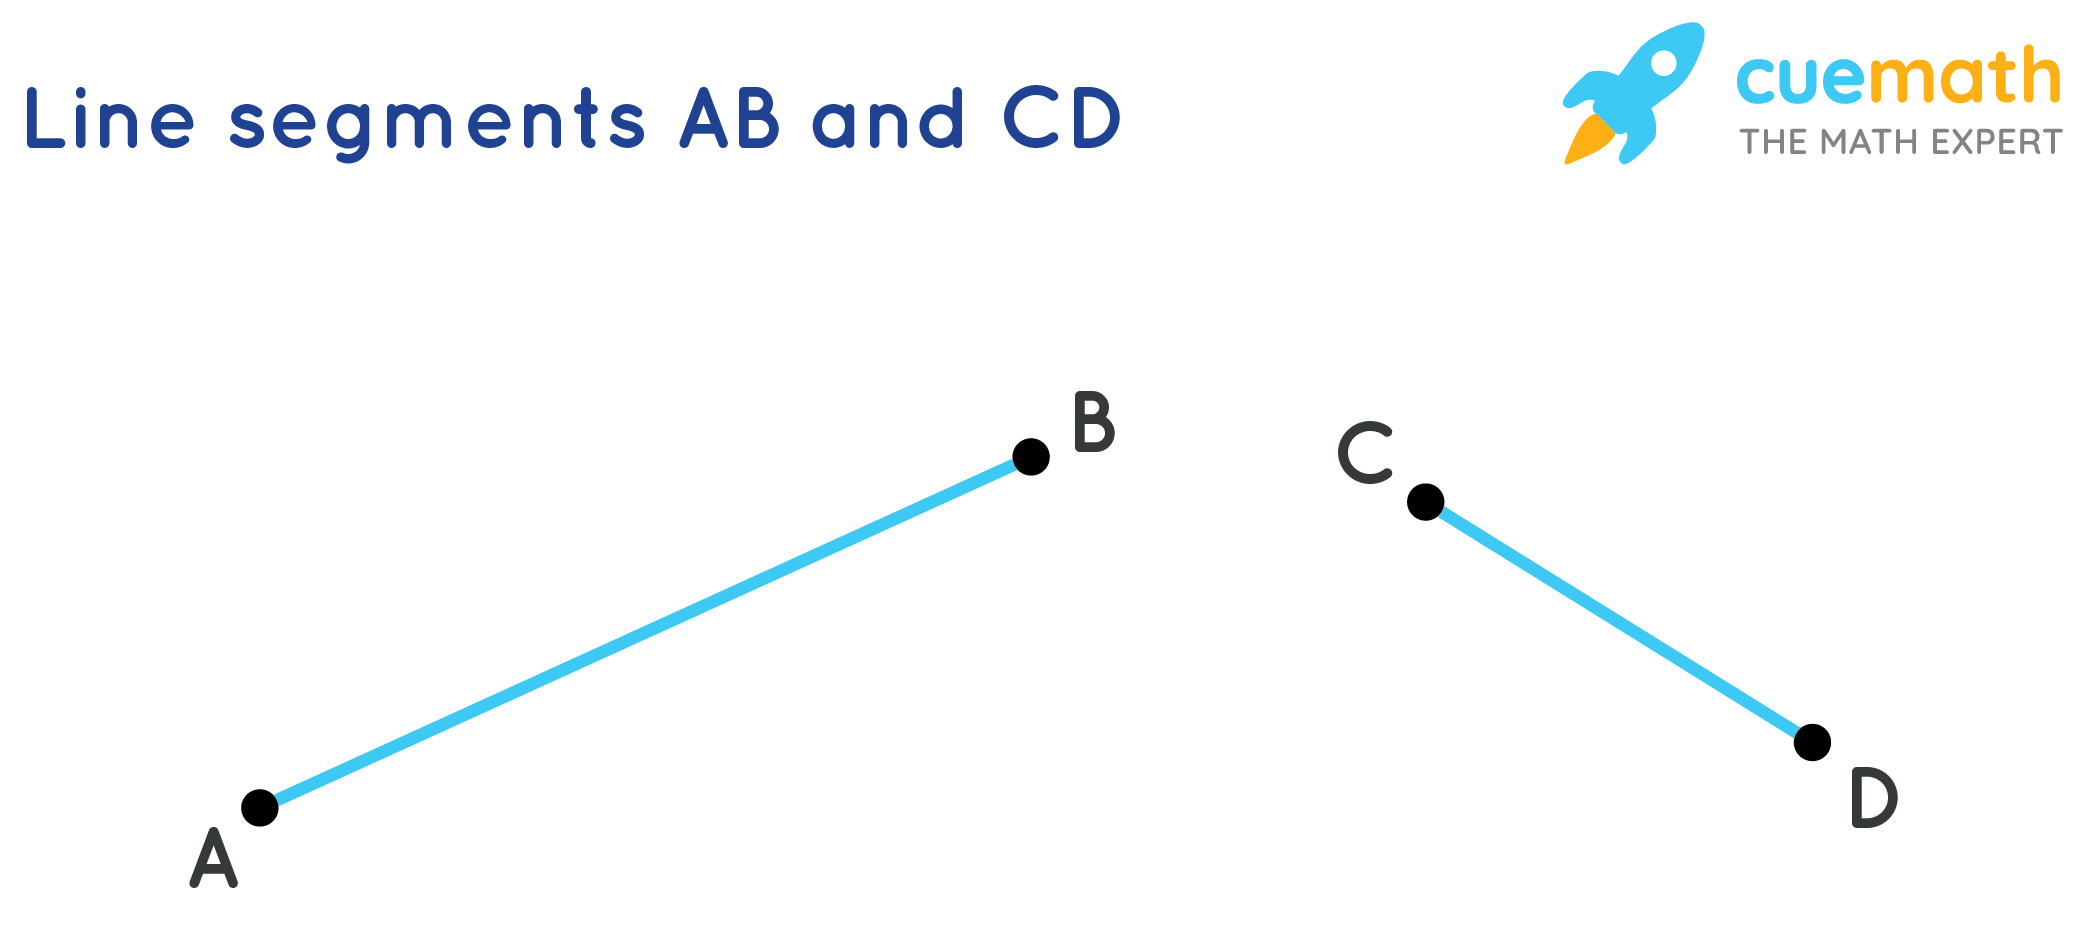 Different line segments AB and CD